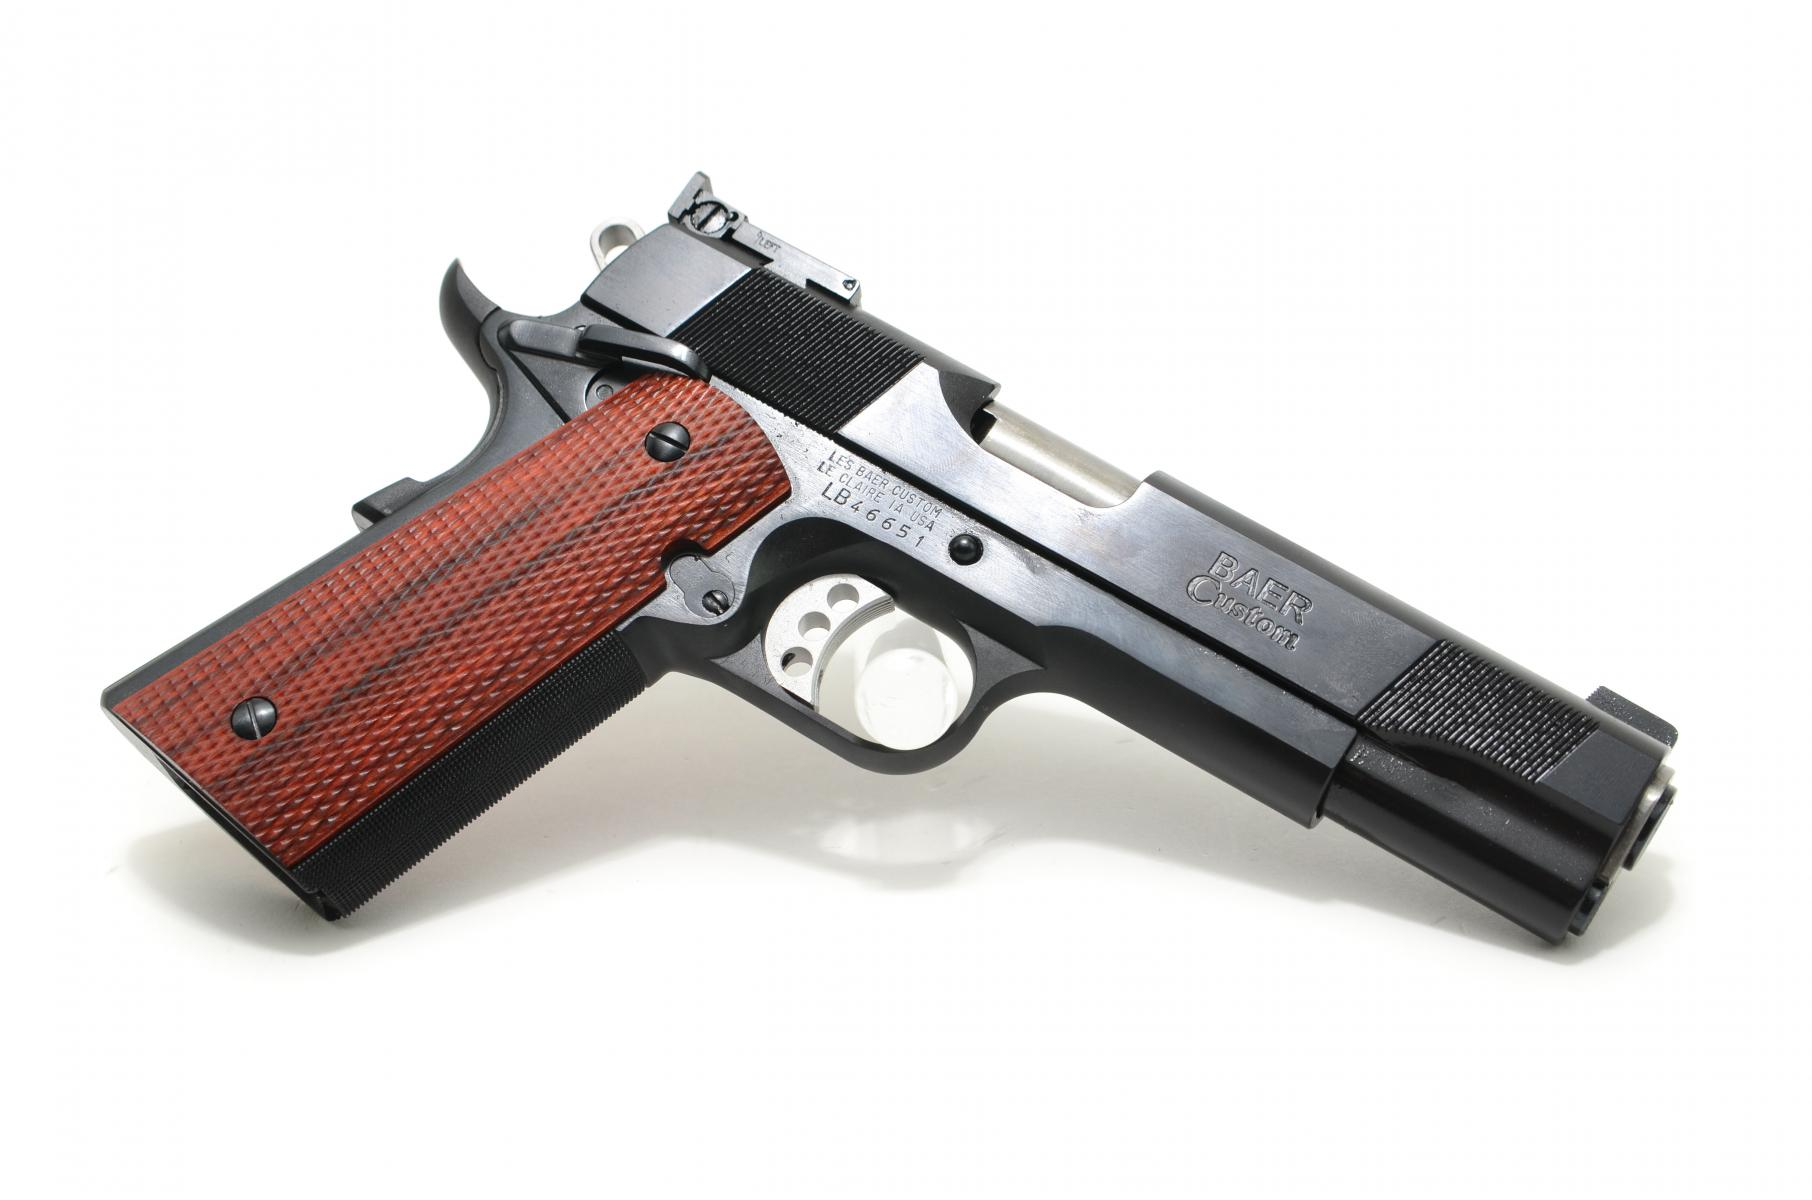 "Les Baer Premier II |9mm 1911 5"" Barrel w/ Supported Chamber, Blue Finish, Lowered and flared ejection port, Tuned and polished extractor, Baer extended ejector, Baer speed trigger w/ 4 lb pull, 2 Magazines"